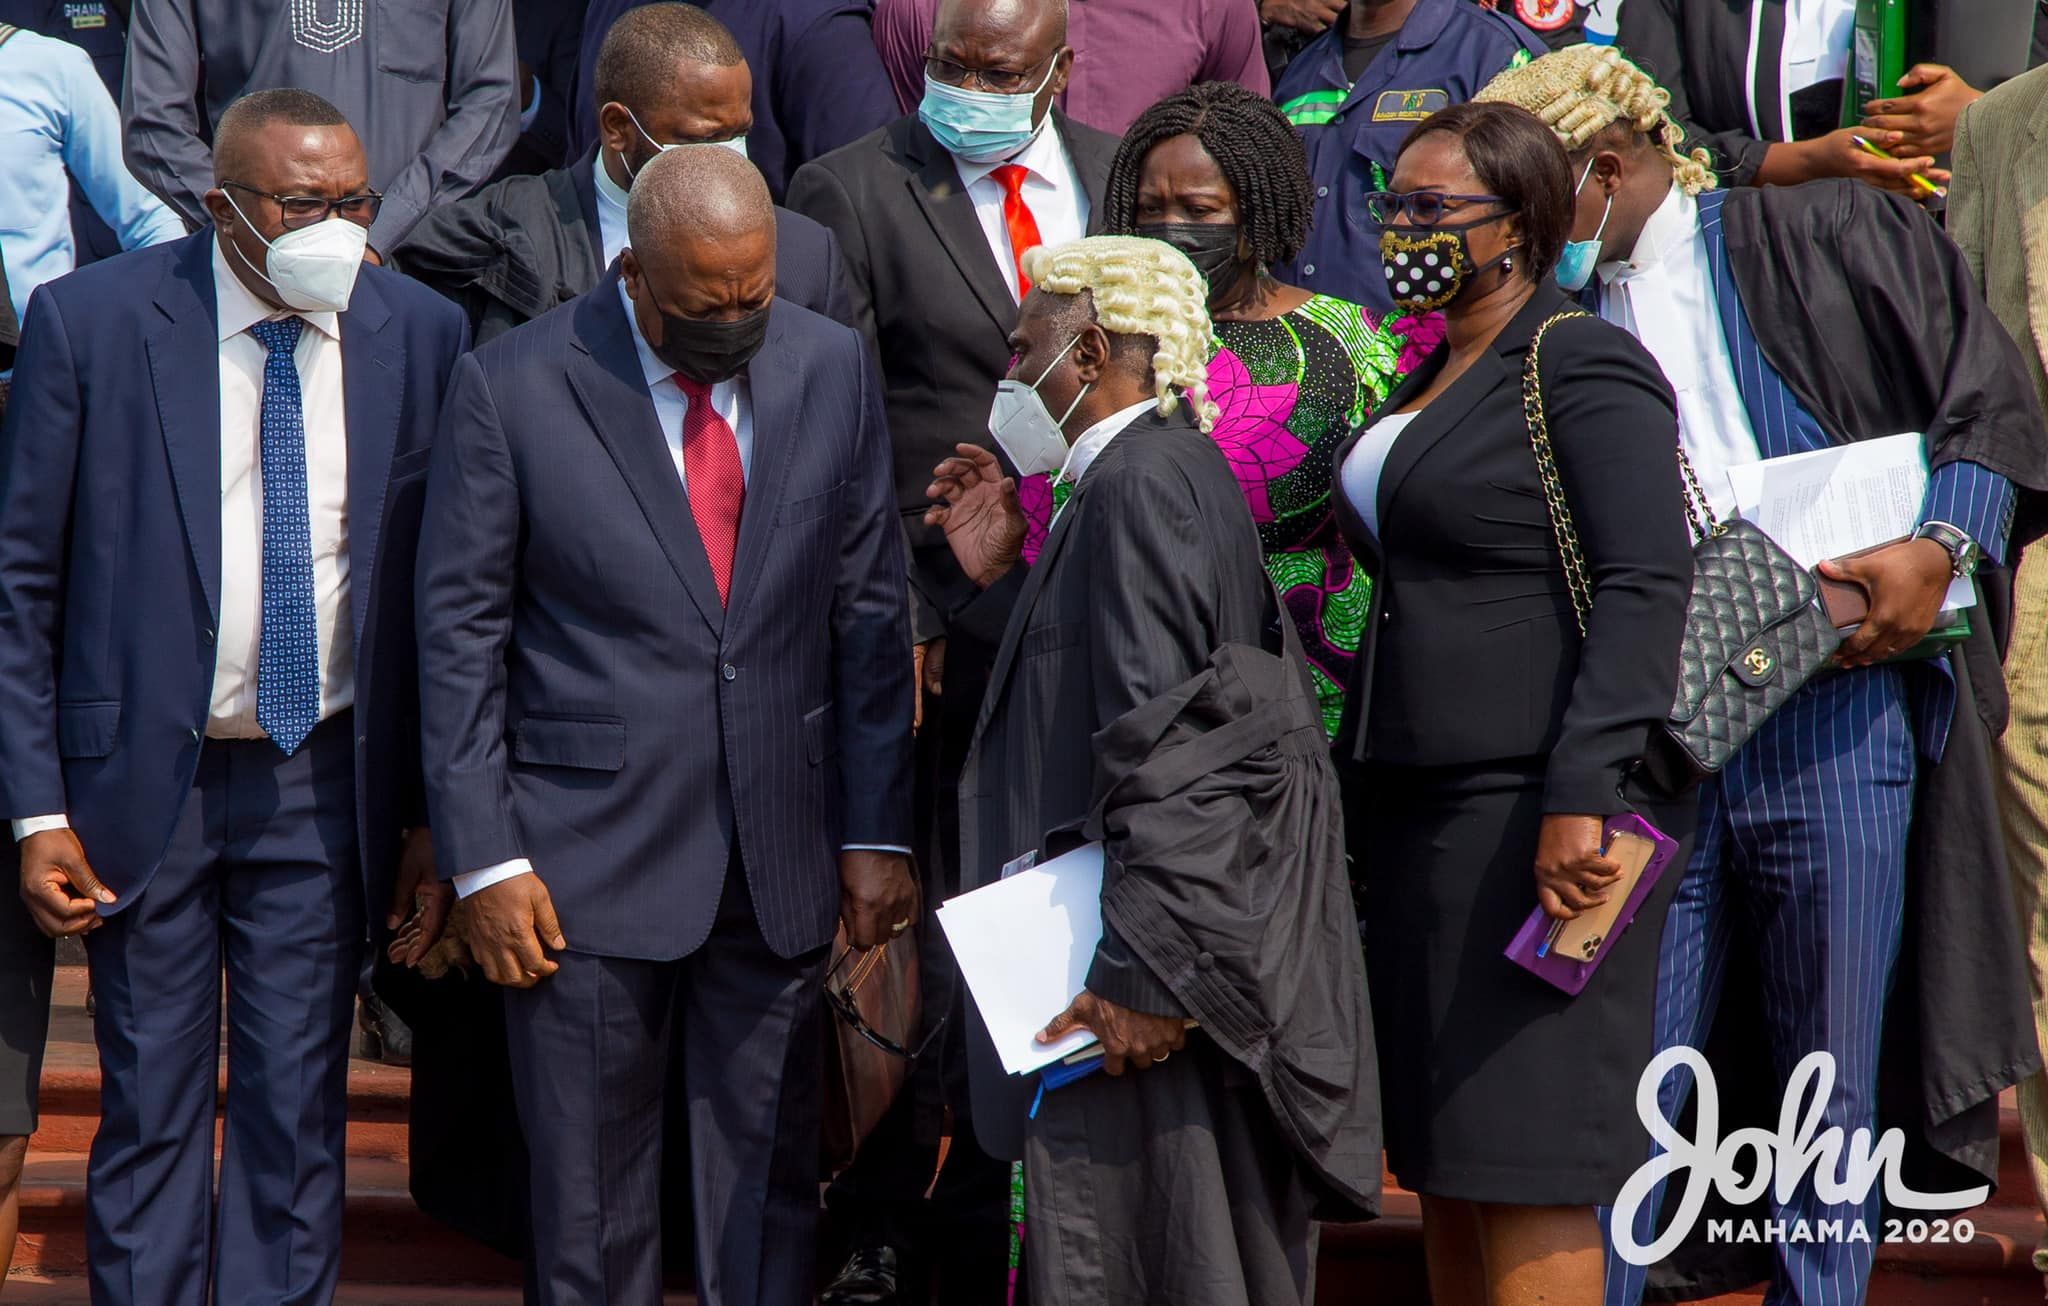 NDC Mahama lawyers to file fresh motion to inspect document in EC's custody